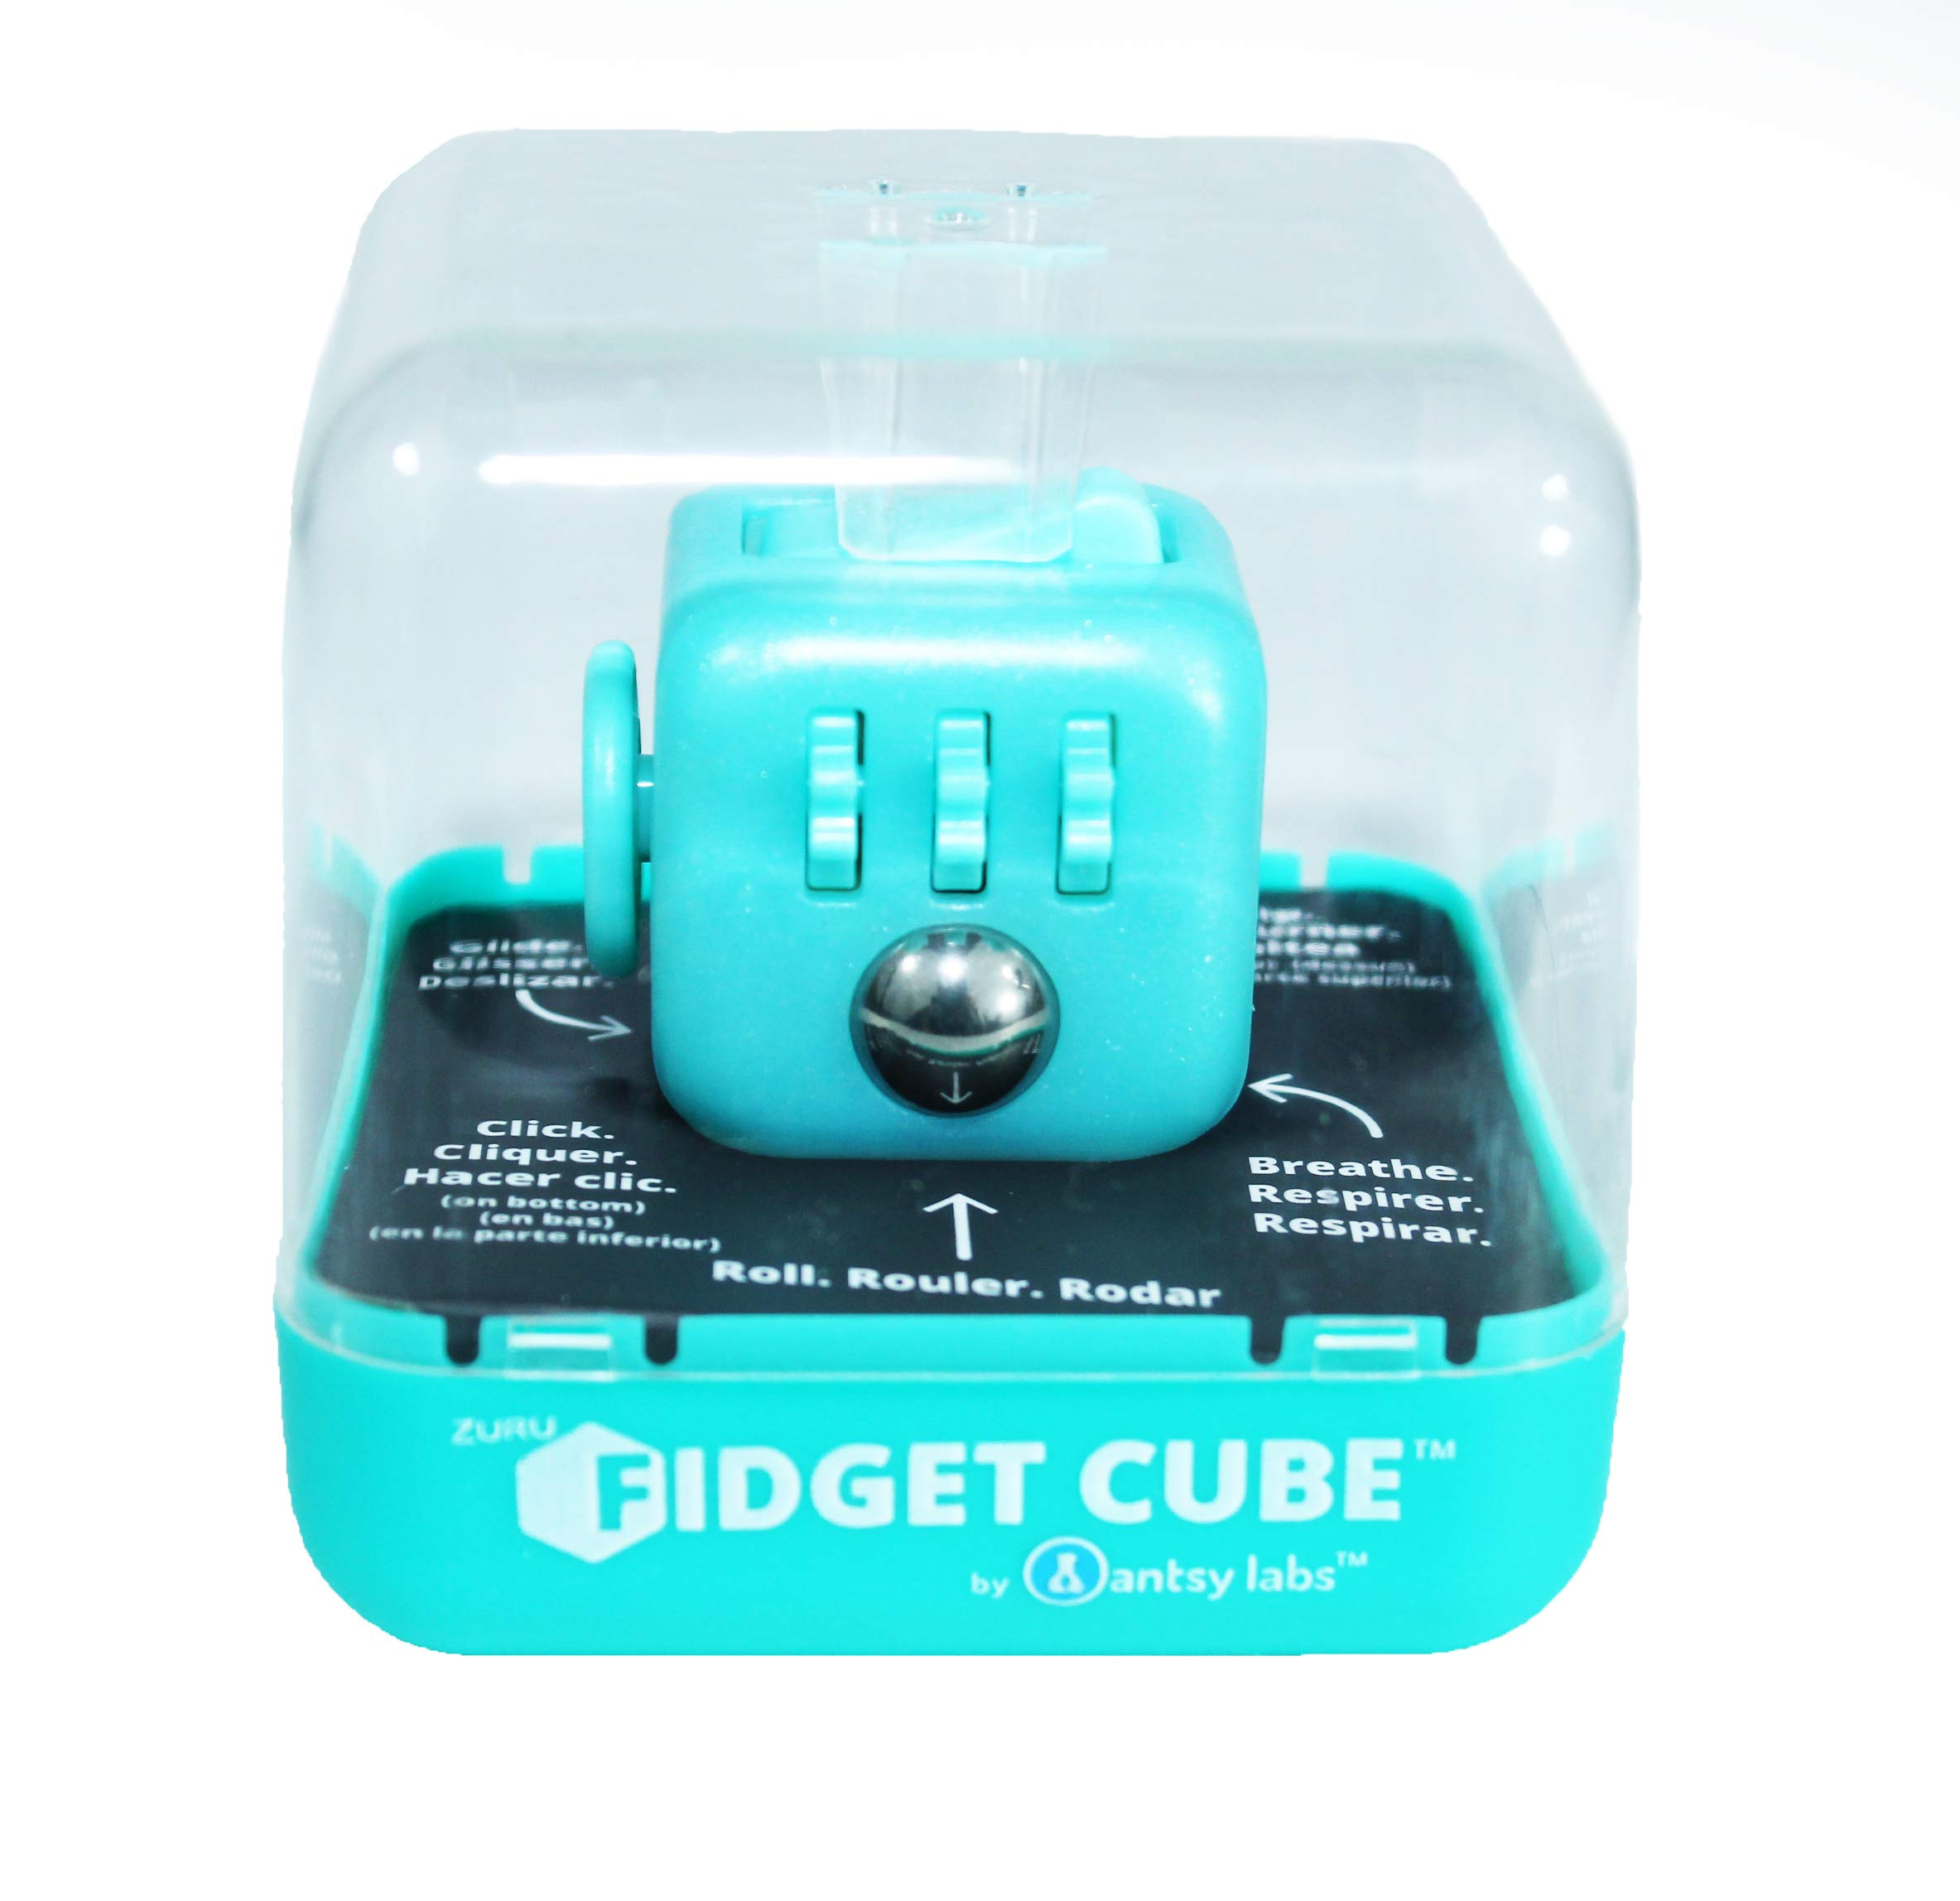 Zuru Fidget Cube by Antsy Labs - Custom Series (Glitter Tiffany Blue) Teal Glitter Fidget Cube with Teal Blue Accents by Zuru Fidget Cube by Antsy Labs (Image #1)